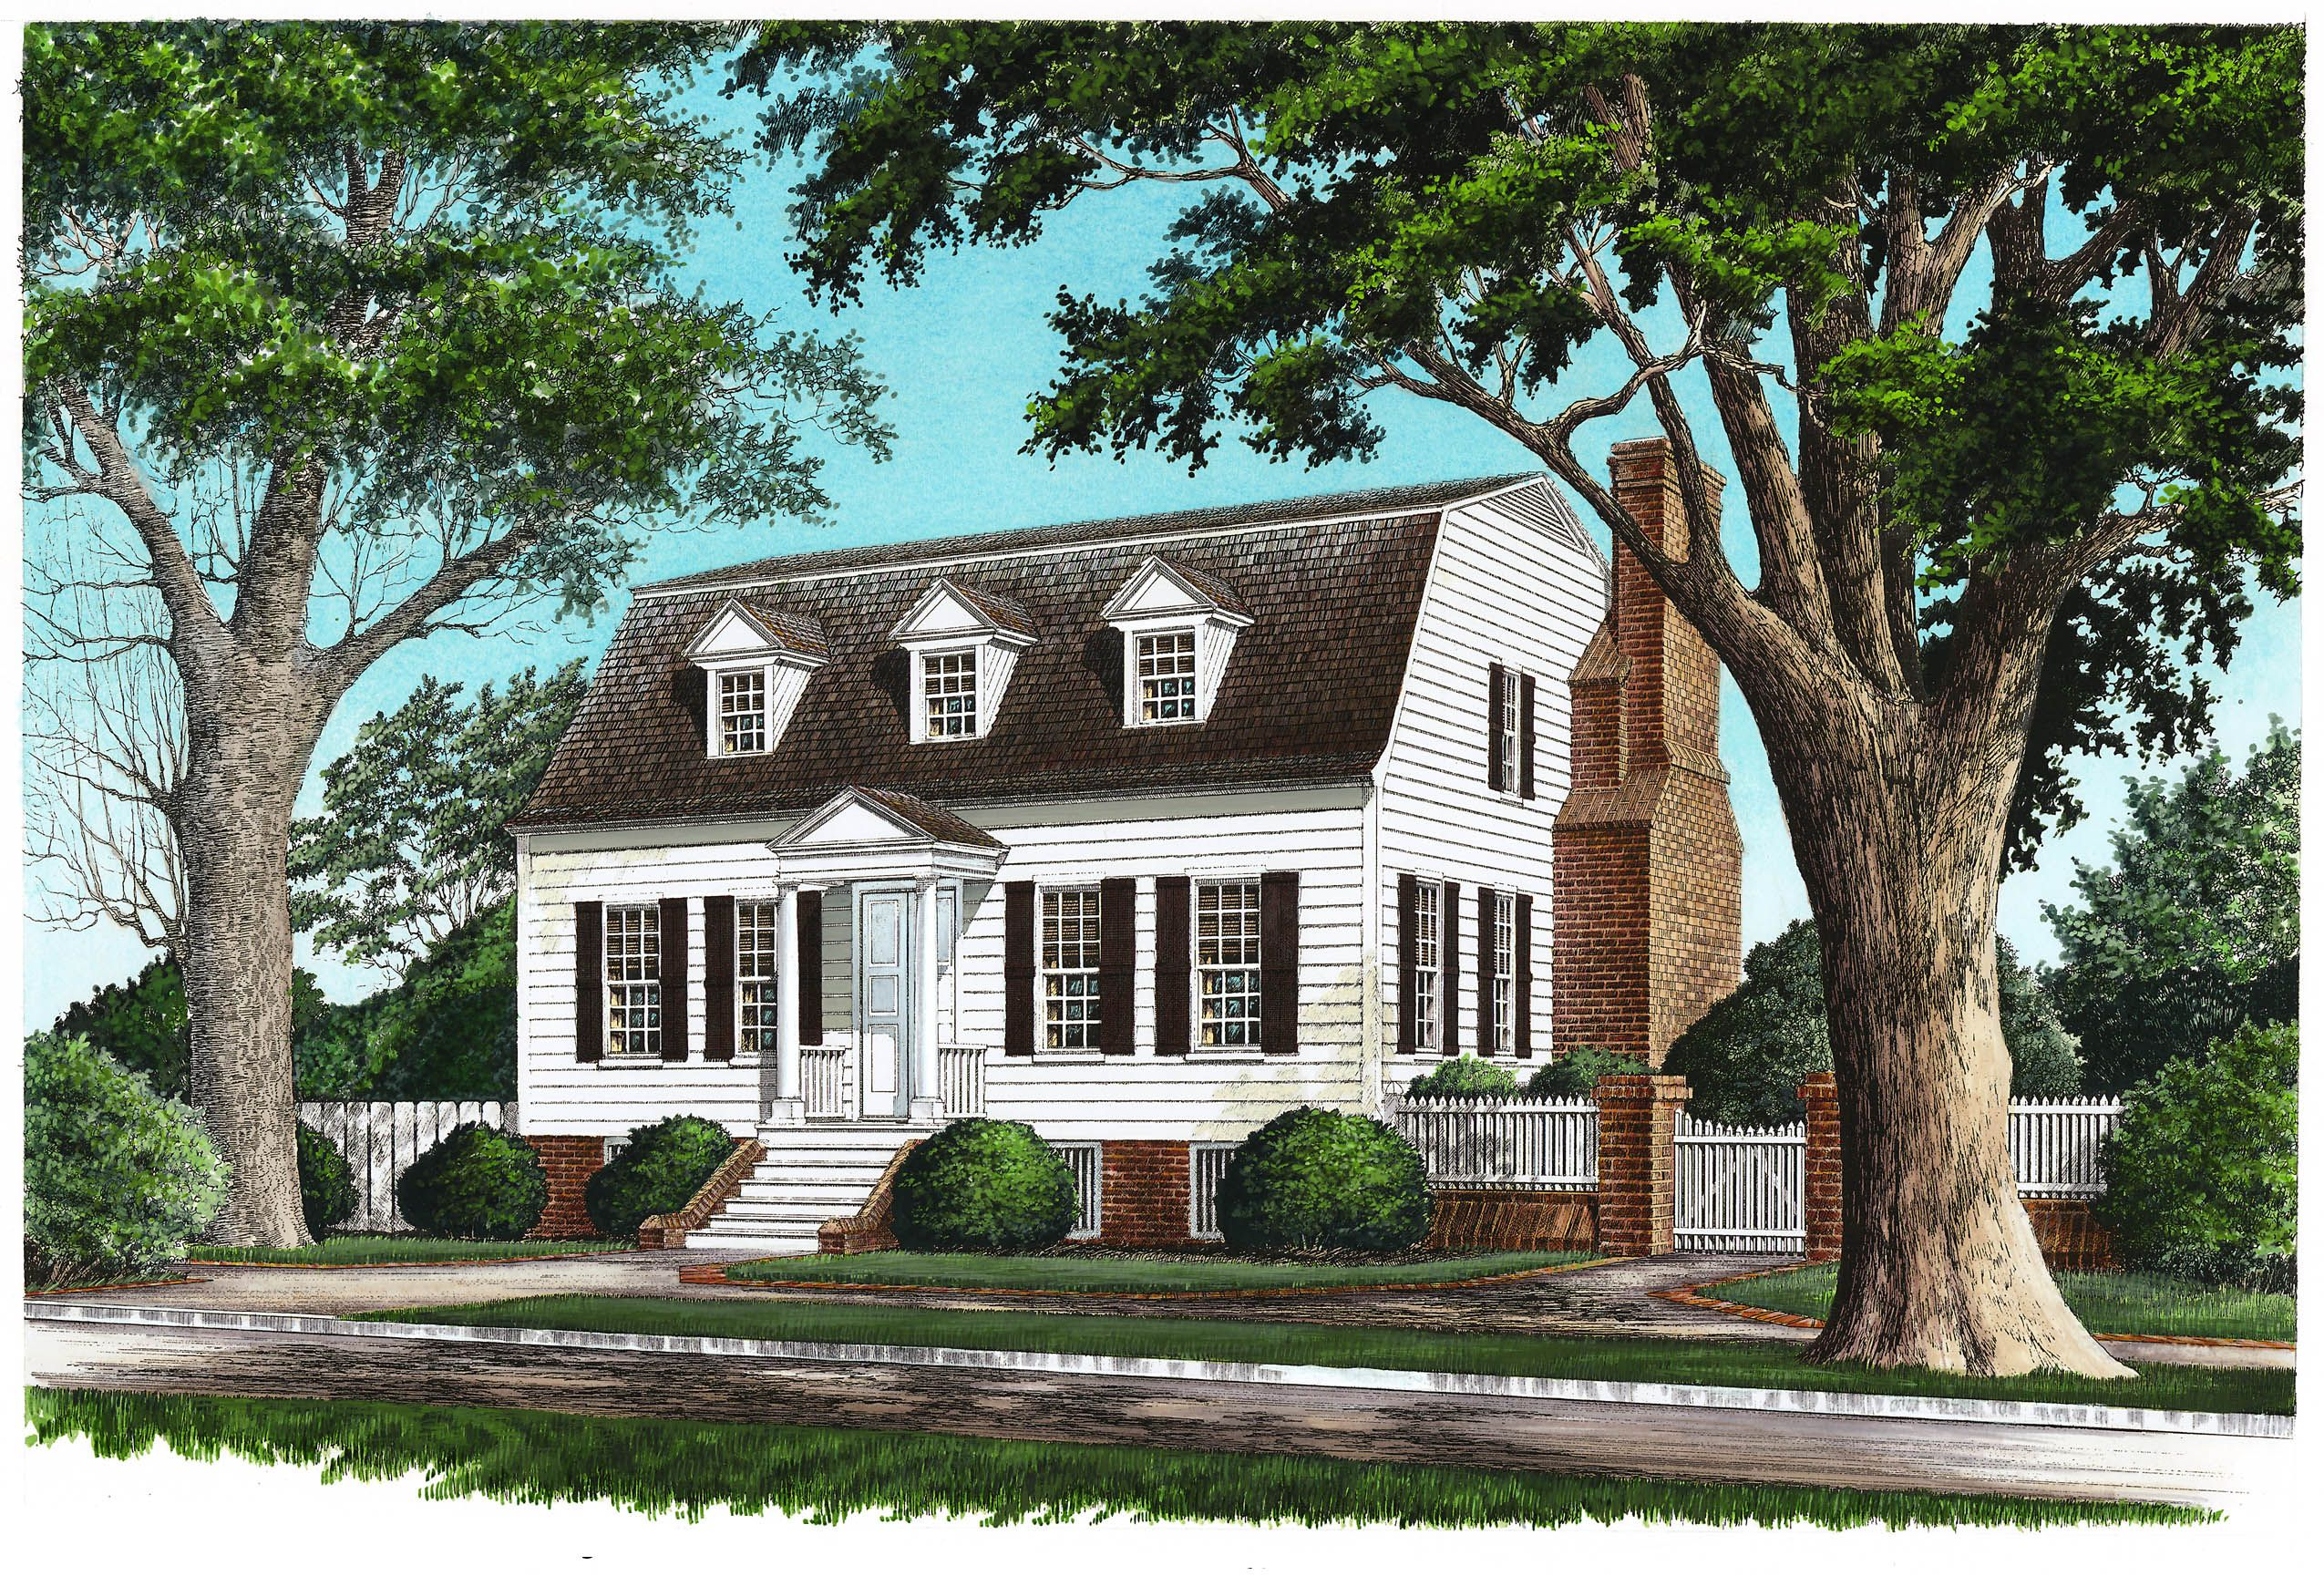 Plan 32457wp Gambrel With Secluded Master Suite Colonial House